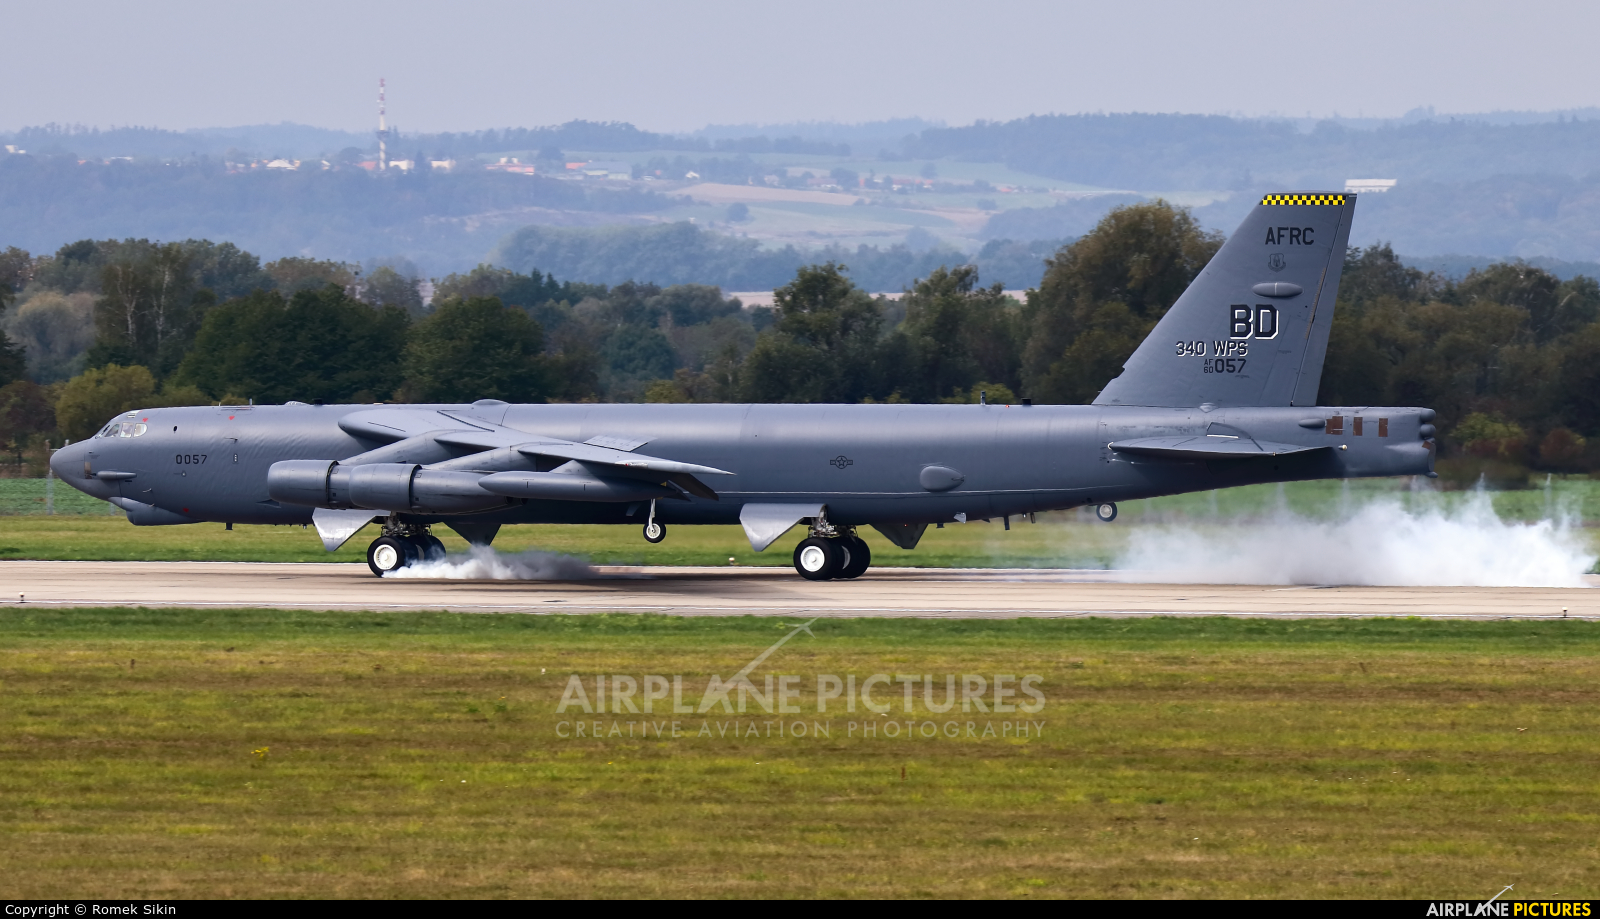 USA - Air Force AFRC 60-0057 aircraft at Ostrava Mošnov